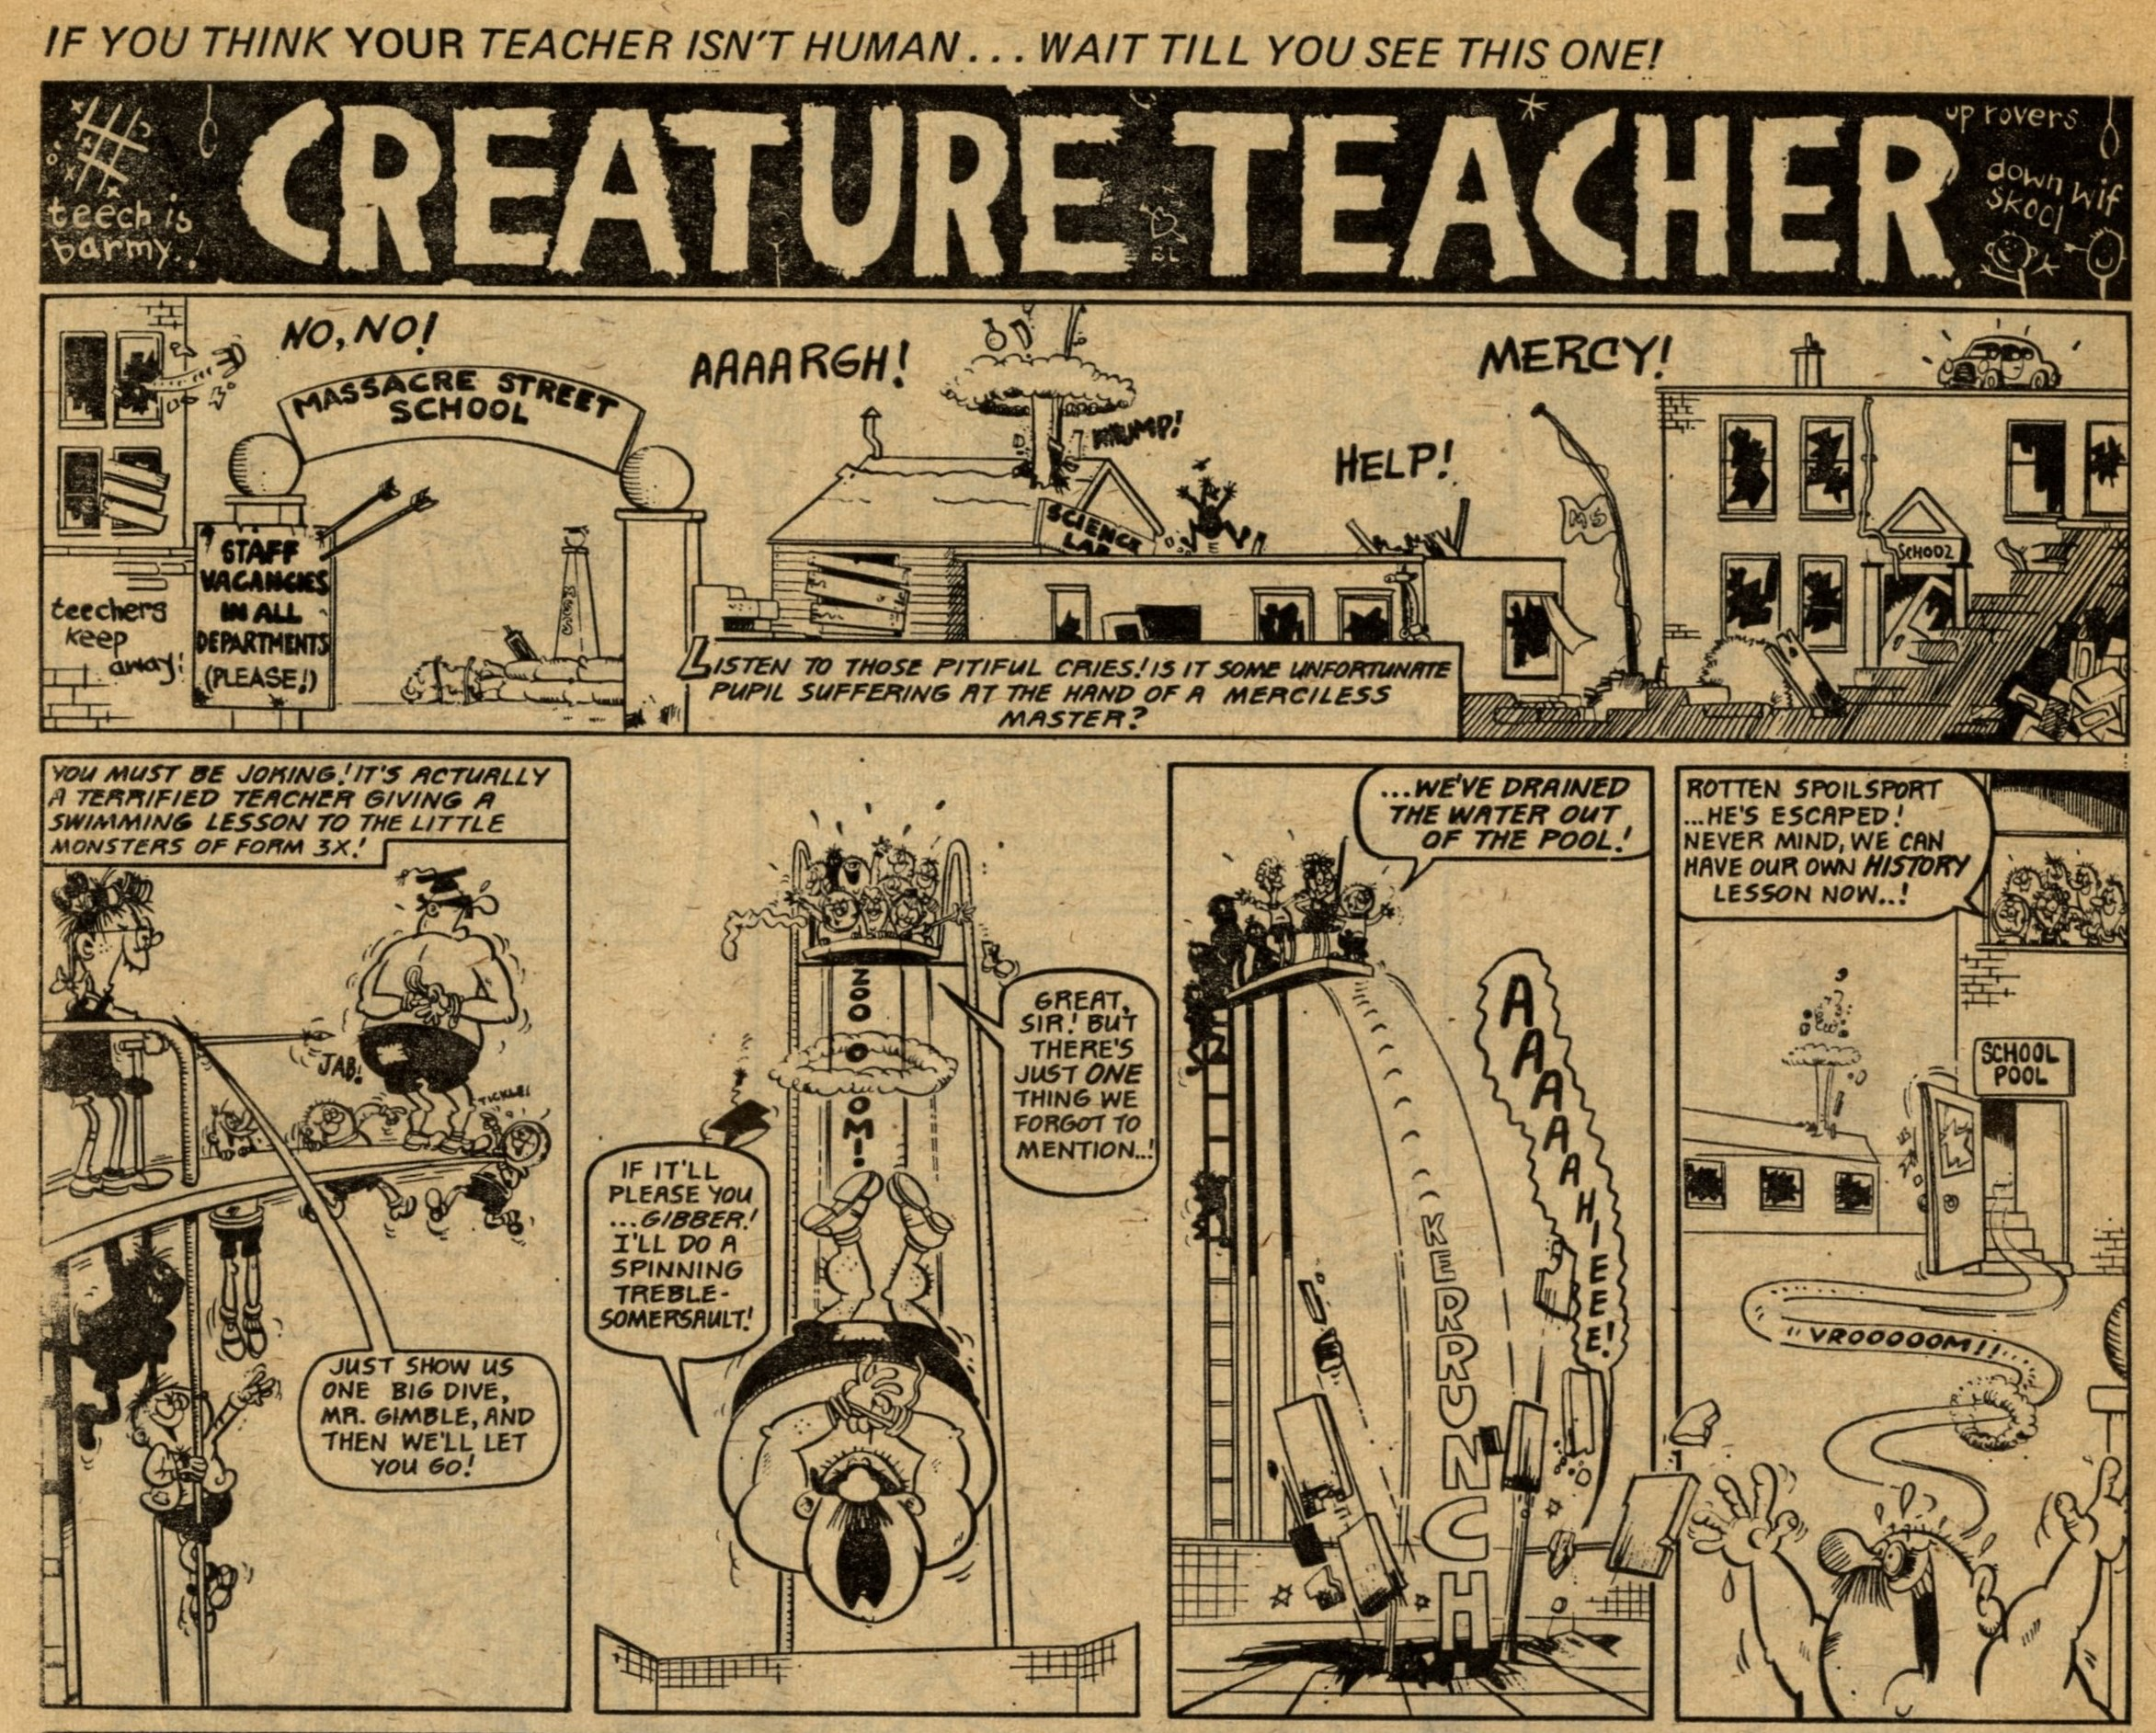 Creature Teacher: Tom Williams (artist)